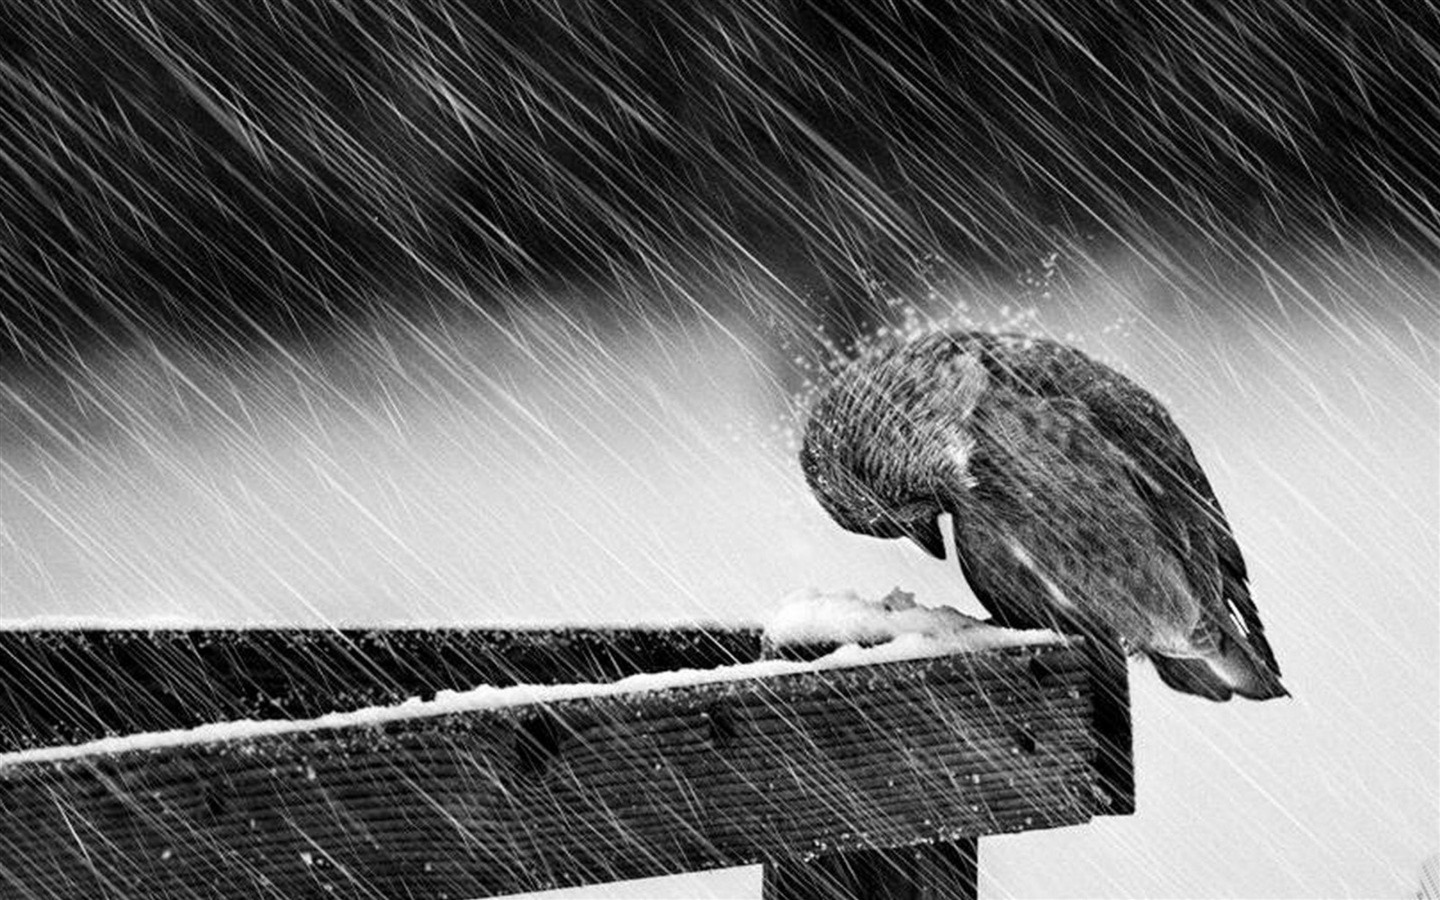 Animal Wallpaper Rain Hd Wallpapers Inspiration Image Source From This